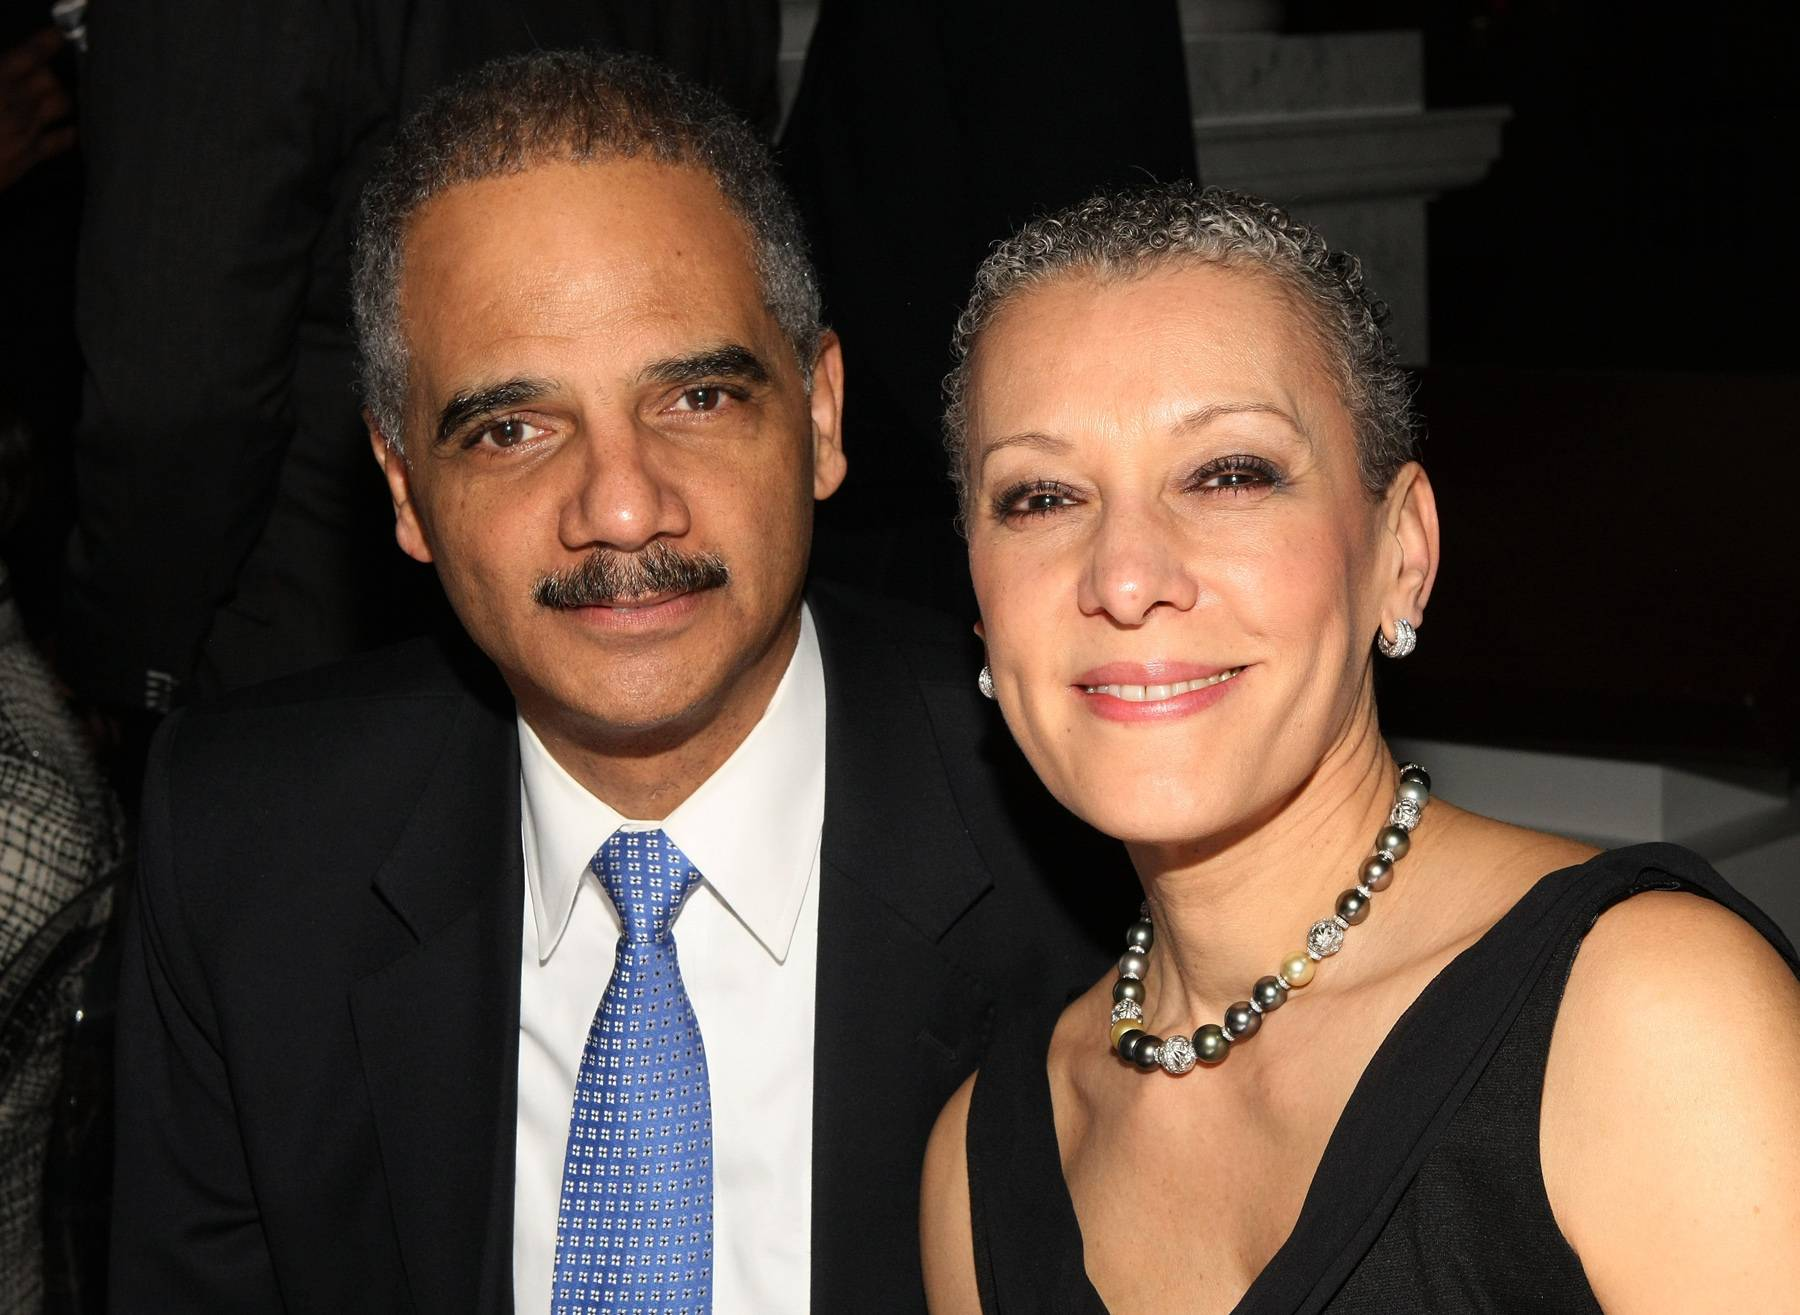 Eric Holder and Sharone Malone - Attorney General Eric Holder and his wife, Dr. Sharone Malone, married on April 7, 1990. When the prominent couple met, Malone was finishing up her medical residency and wasn?t sure if she wanted to move or remain in D.C. Meeting Holder was all the reason she needed to stay.(Photo: Bennett Raglin/Getty Images for BET)